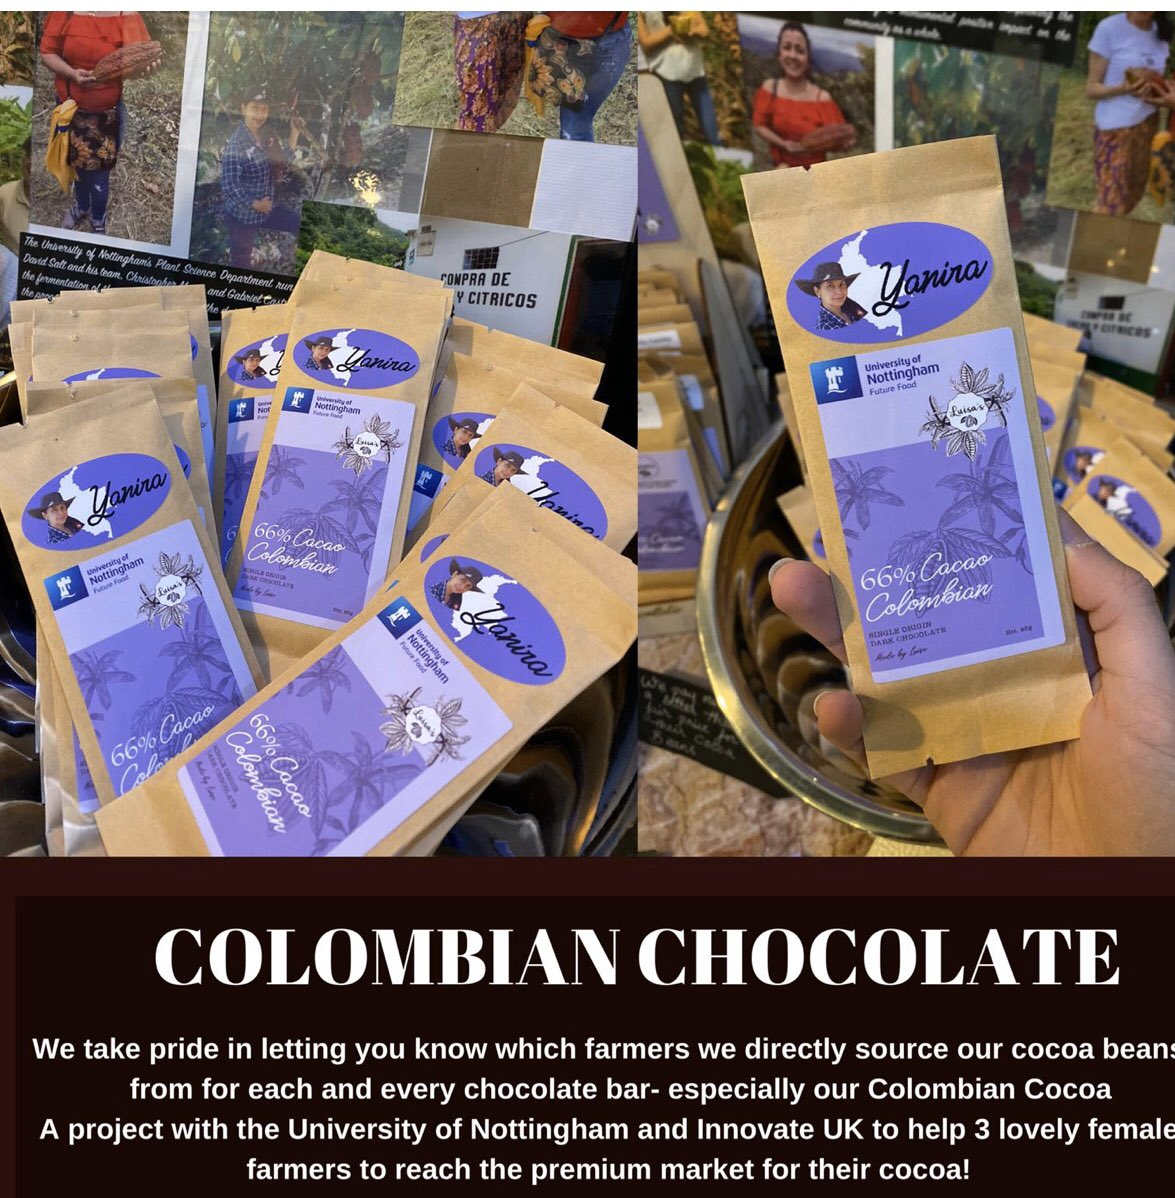 Delighted to be presenting our Colombian project with @UoNFutureFood at the Foreign office London today helping female farmers reach a super premium price for cacao. Please support this ethical project purchase bars luisasveganchocolates.co.uk #visitnottingham #SmallBusinessSaturday